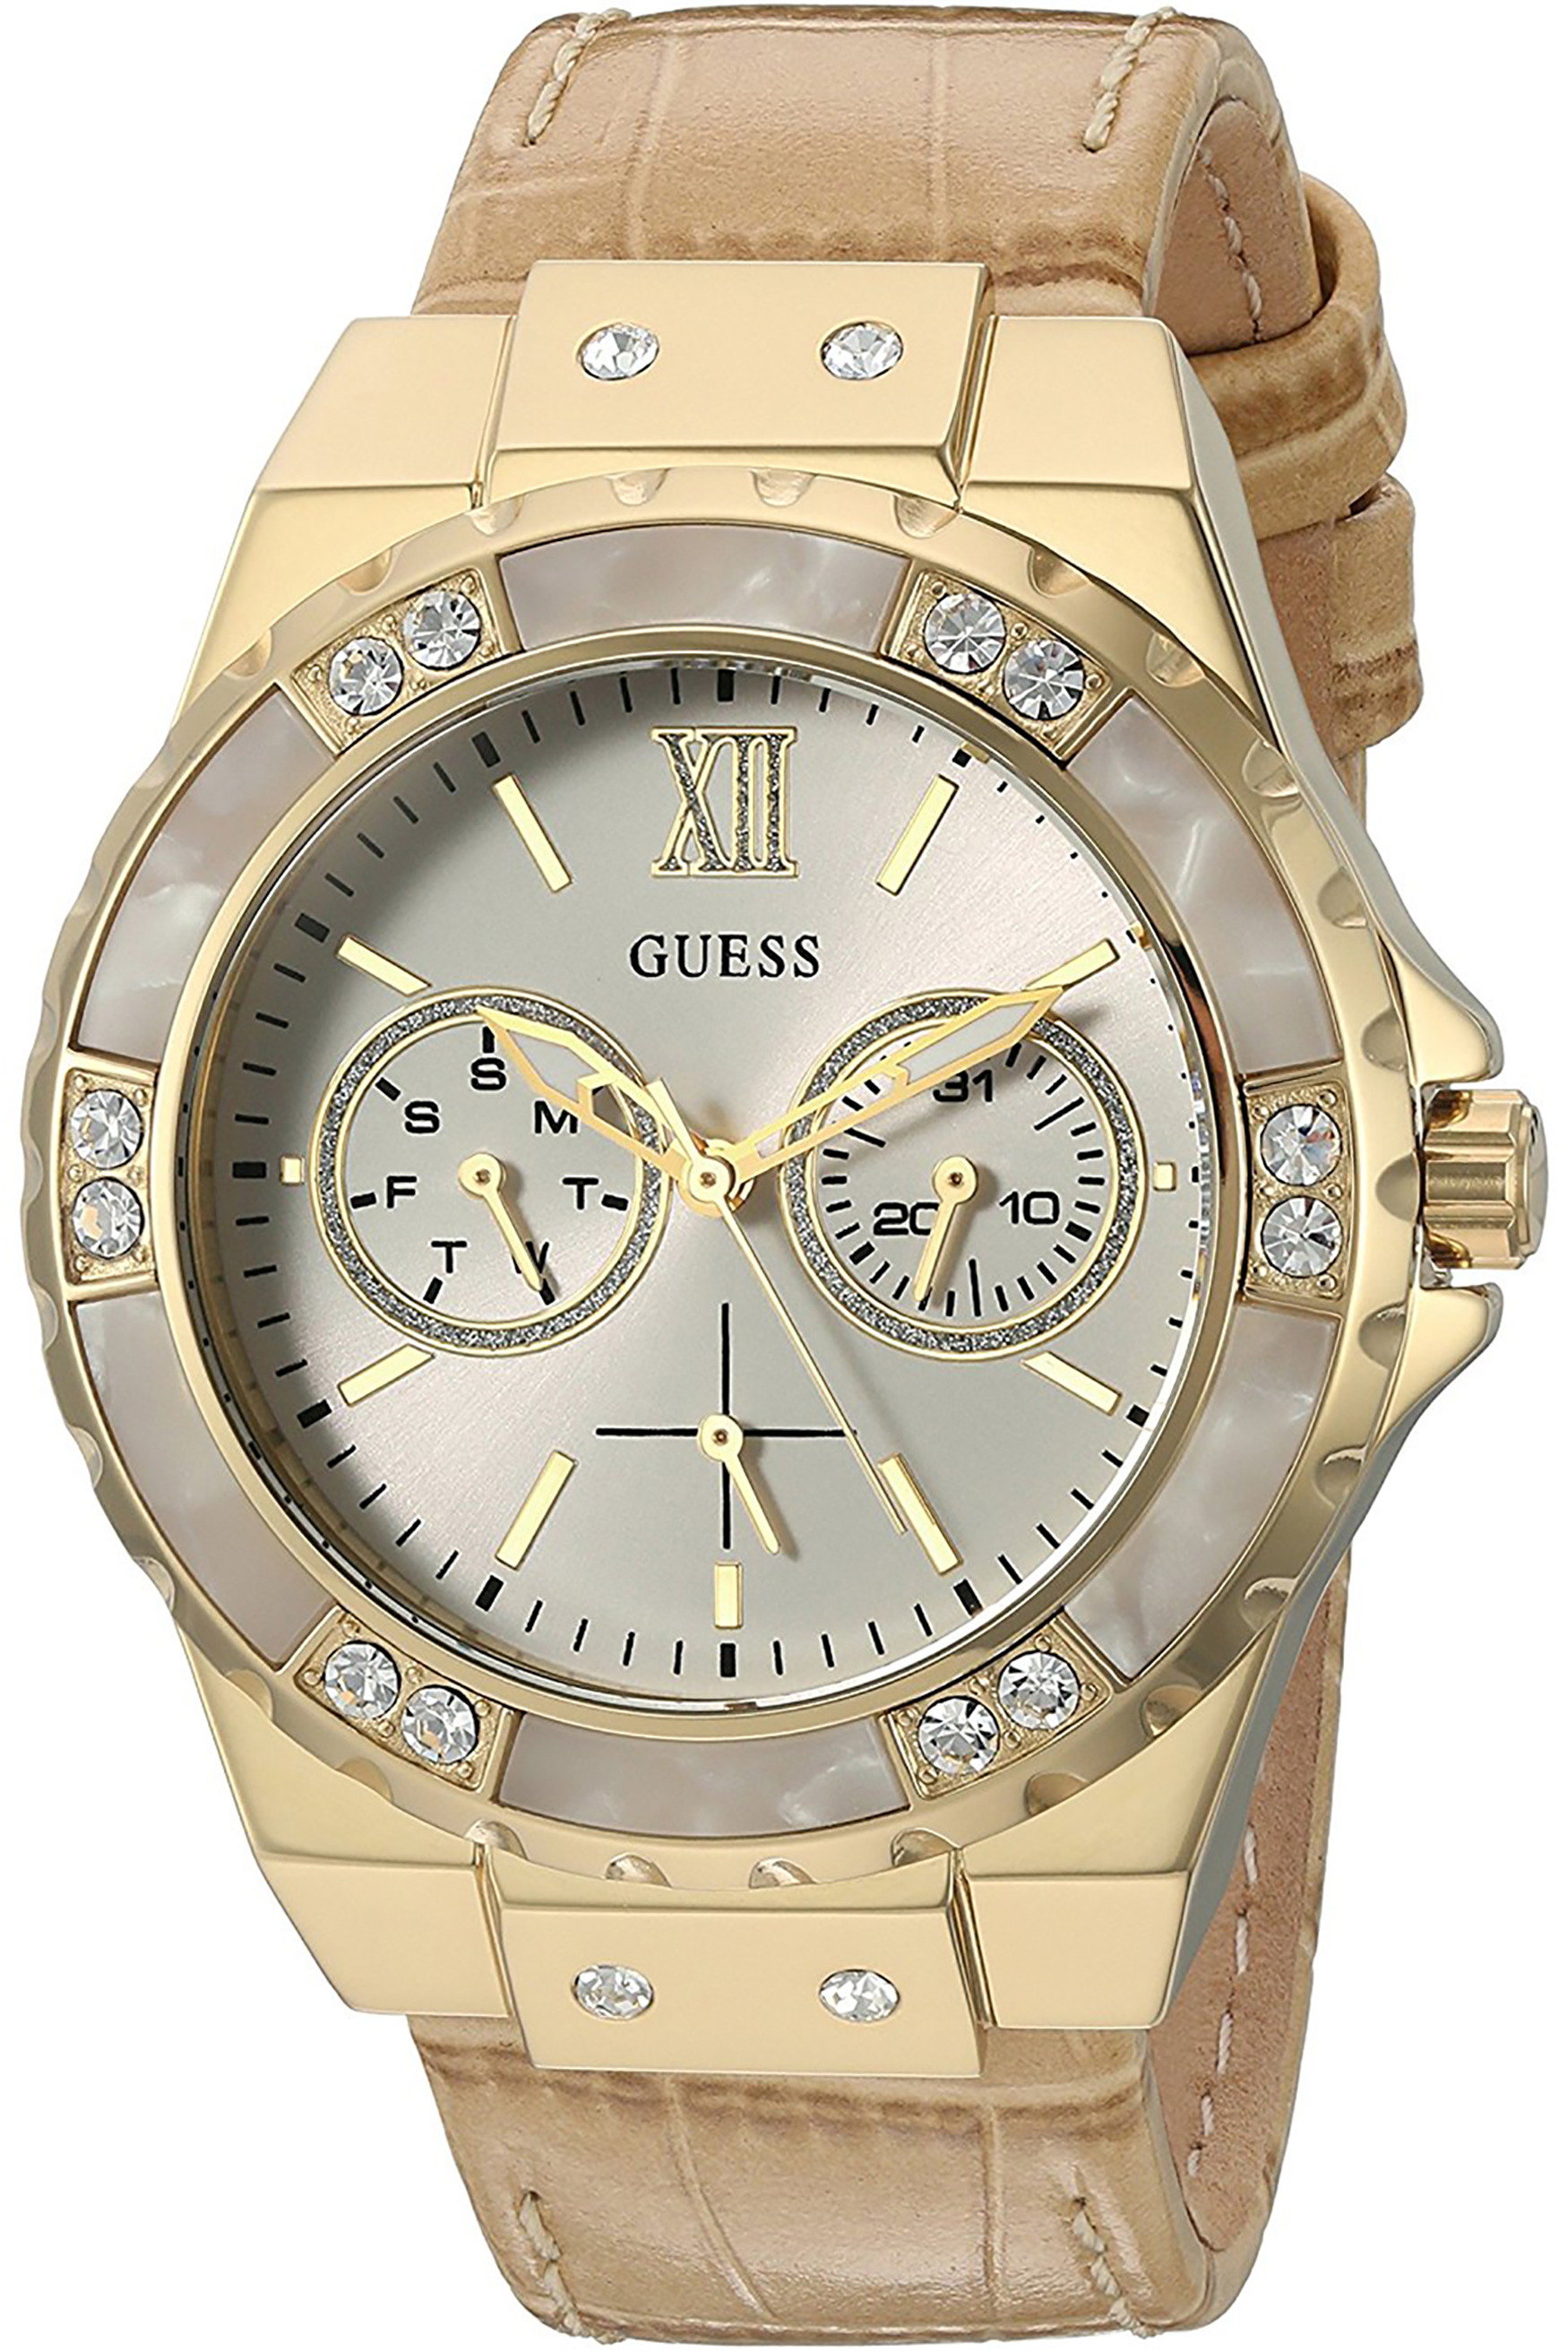 W0775L2,Ladies Multi-function,gold tone,leather strap,Crystal Accented Bezel,50m WR